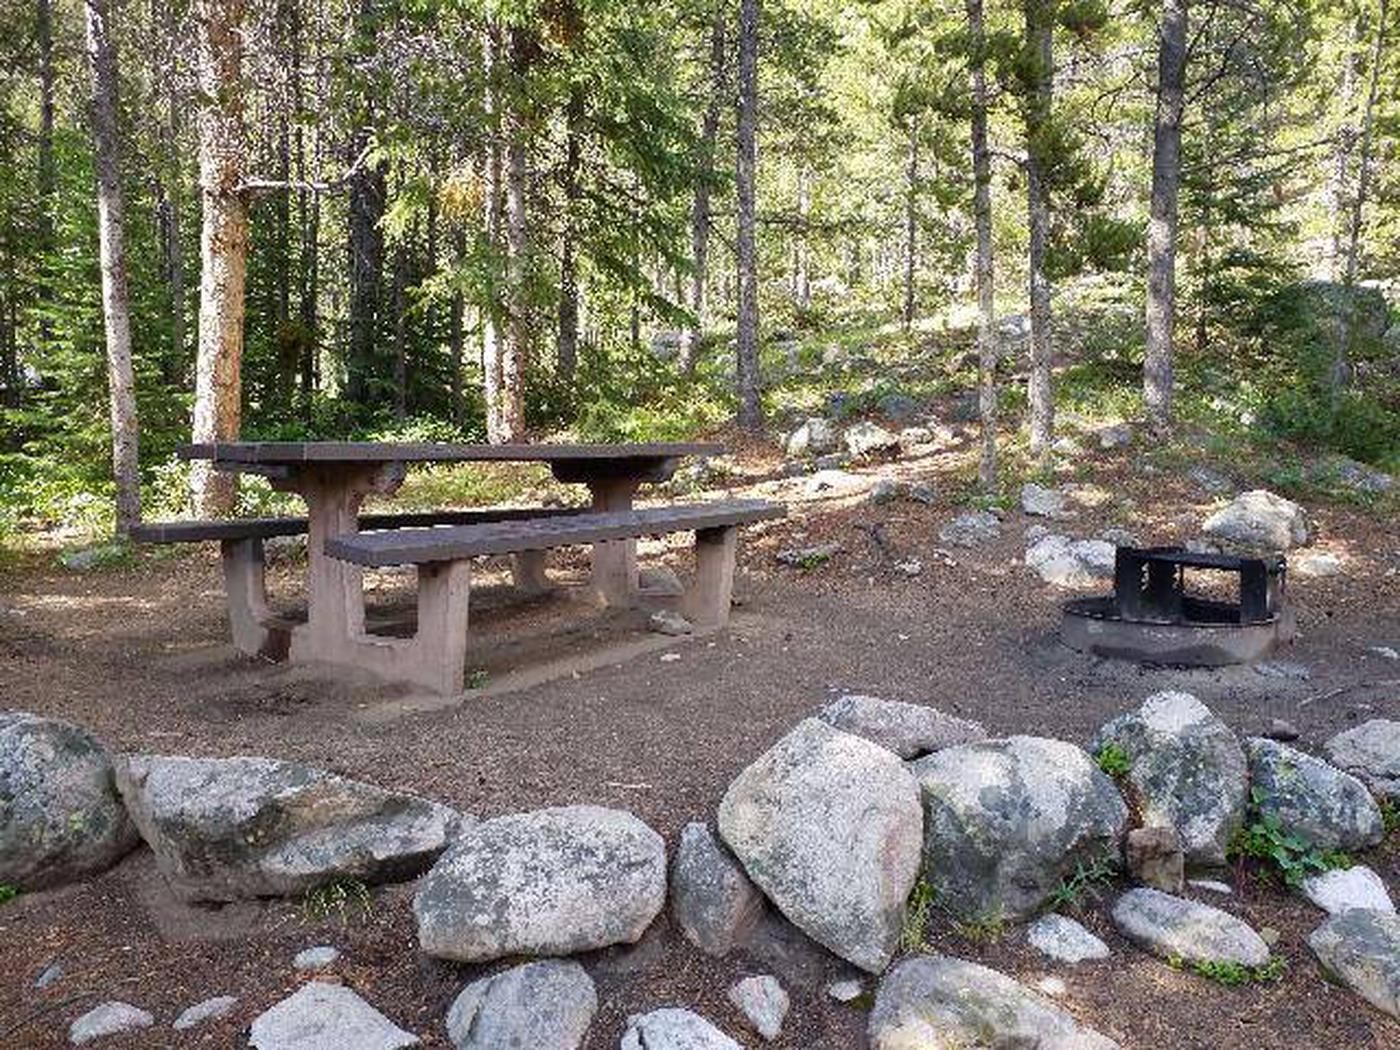 May Queen Campground, site 3 picnic table and fire ring